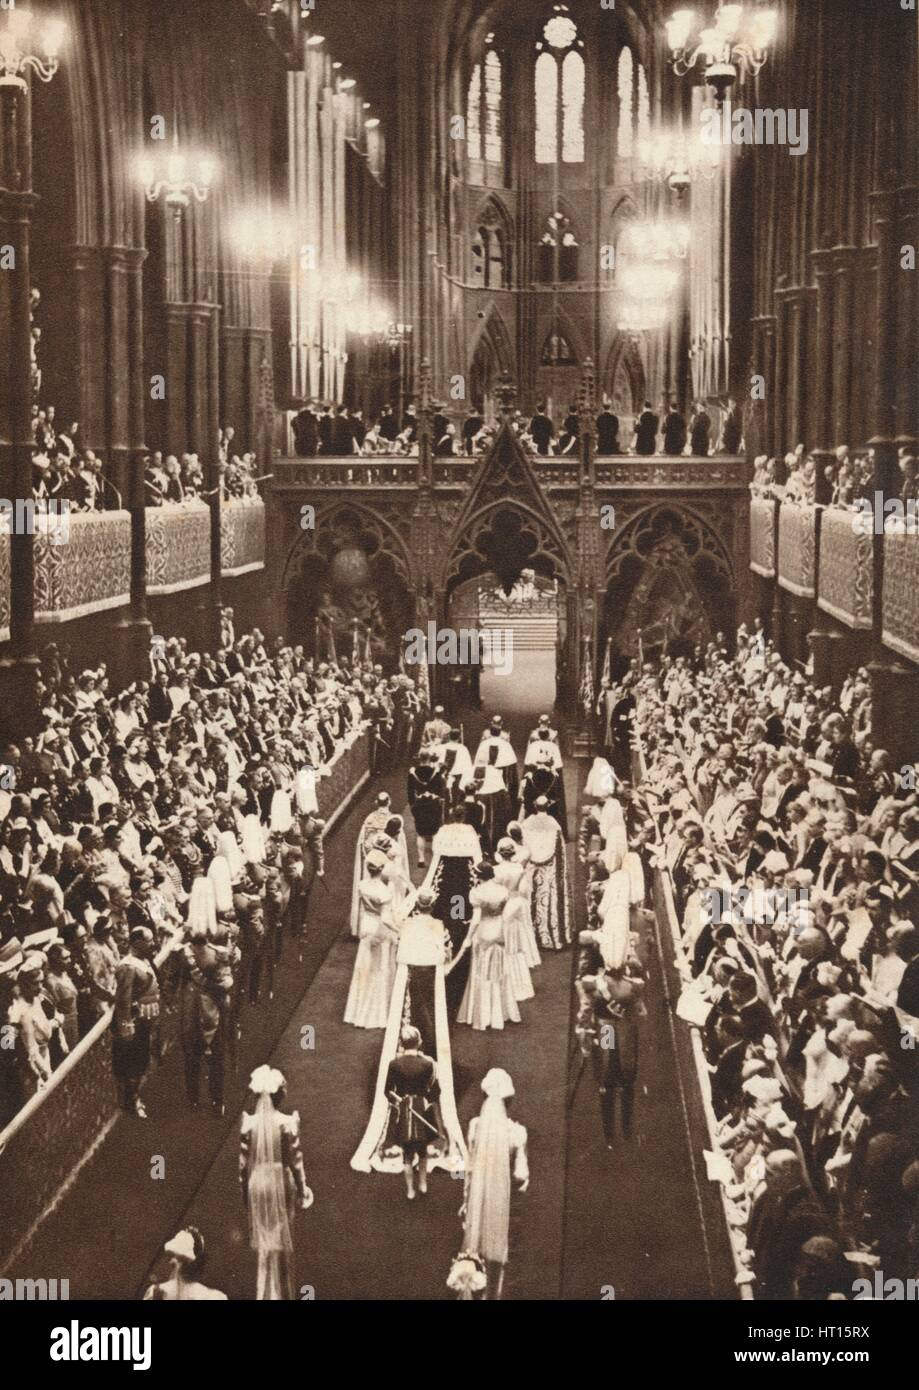 'The Procession Into The Abbey', 1937. Artist: Unknown. - Stock Image